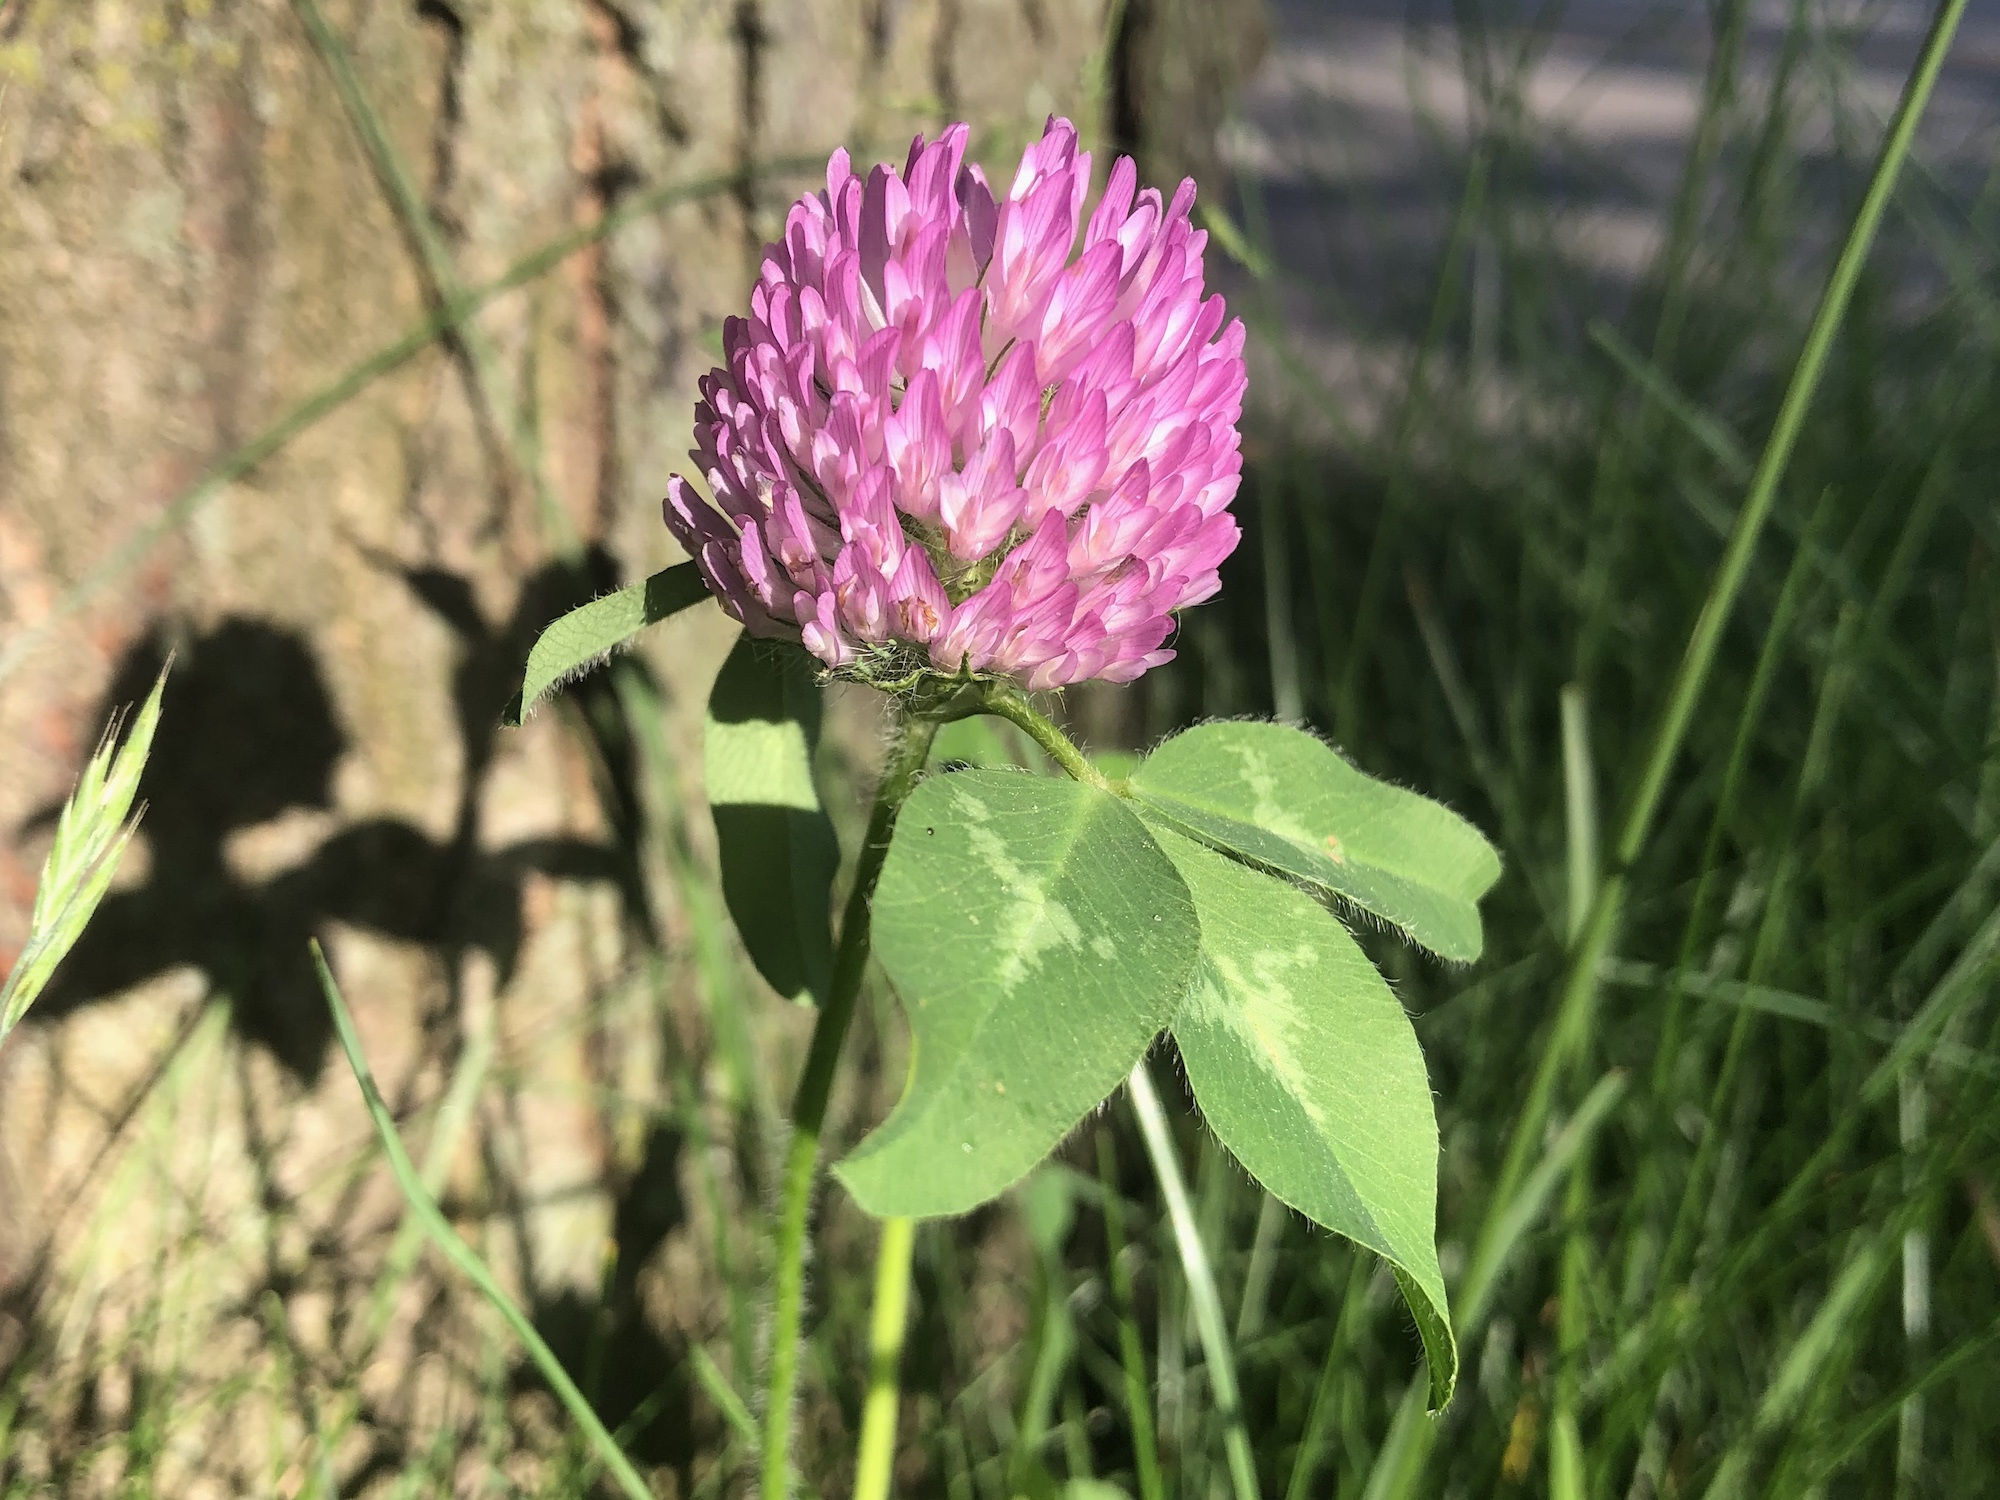 Red Clover by sidewalk near Marion Dunn on Monroe Street on June 2, 2020.